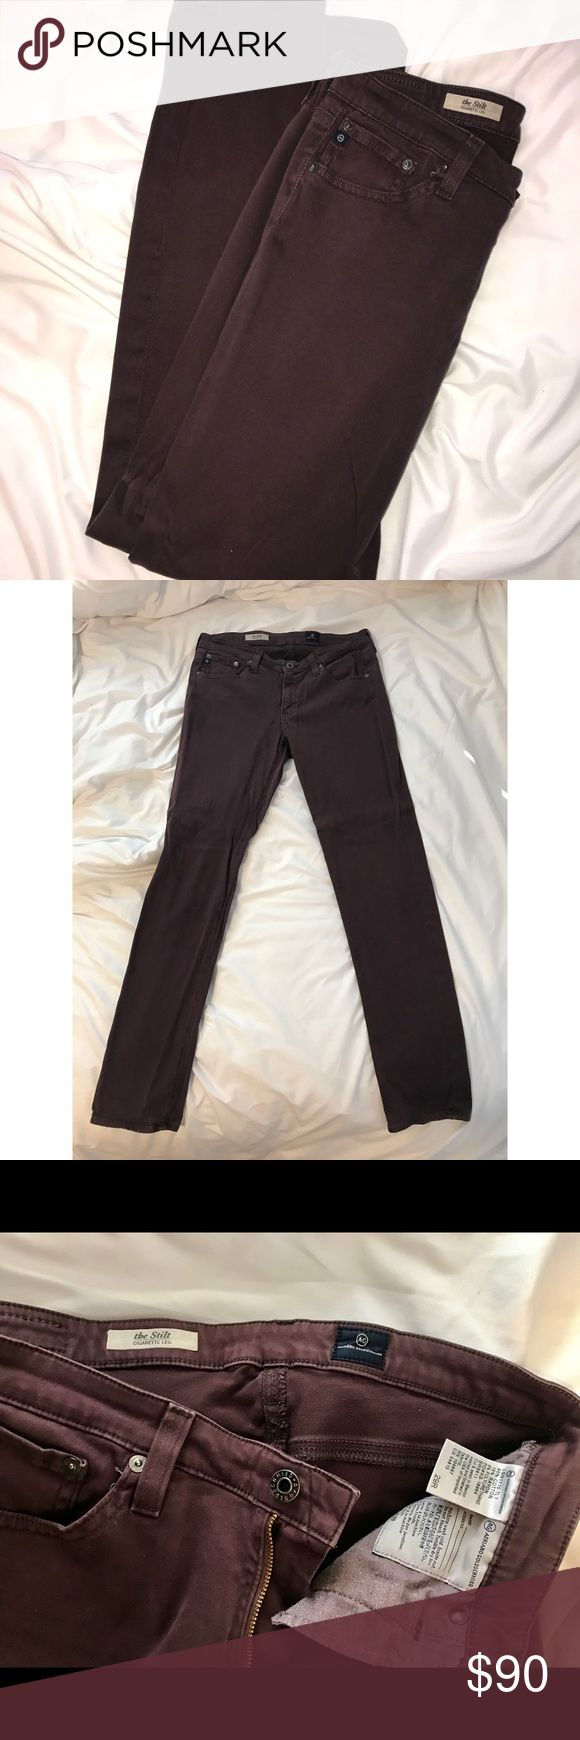 "AG Adriano Goldschmeid Cigarette Leg Plum Jeans 29 AG Adriano Goldschmeid ""The Stilt"" Cigarette Leg Plum Jeans 29: Deep plum colored skinny jeans Size 29, 80% Cotton, 15% Rayon, 5% Polyurethane; machine wash and dry  Perfect for fall, hardly worn, beautiful jeans! Ag Adriano Goldschmied Jeans Skinny"